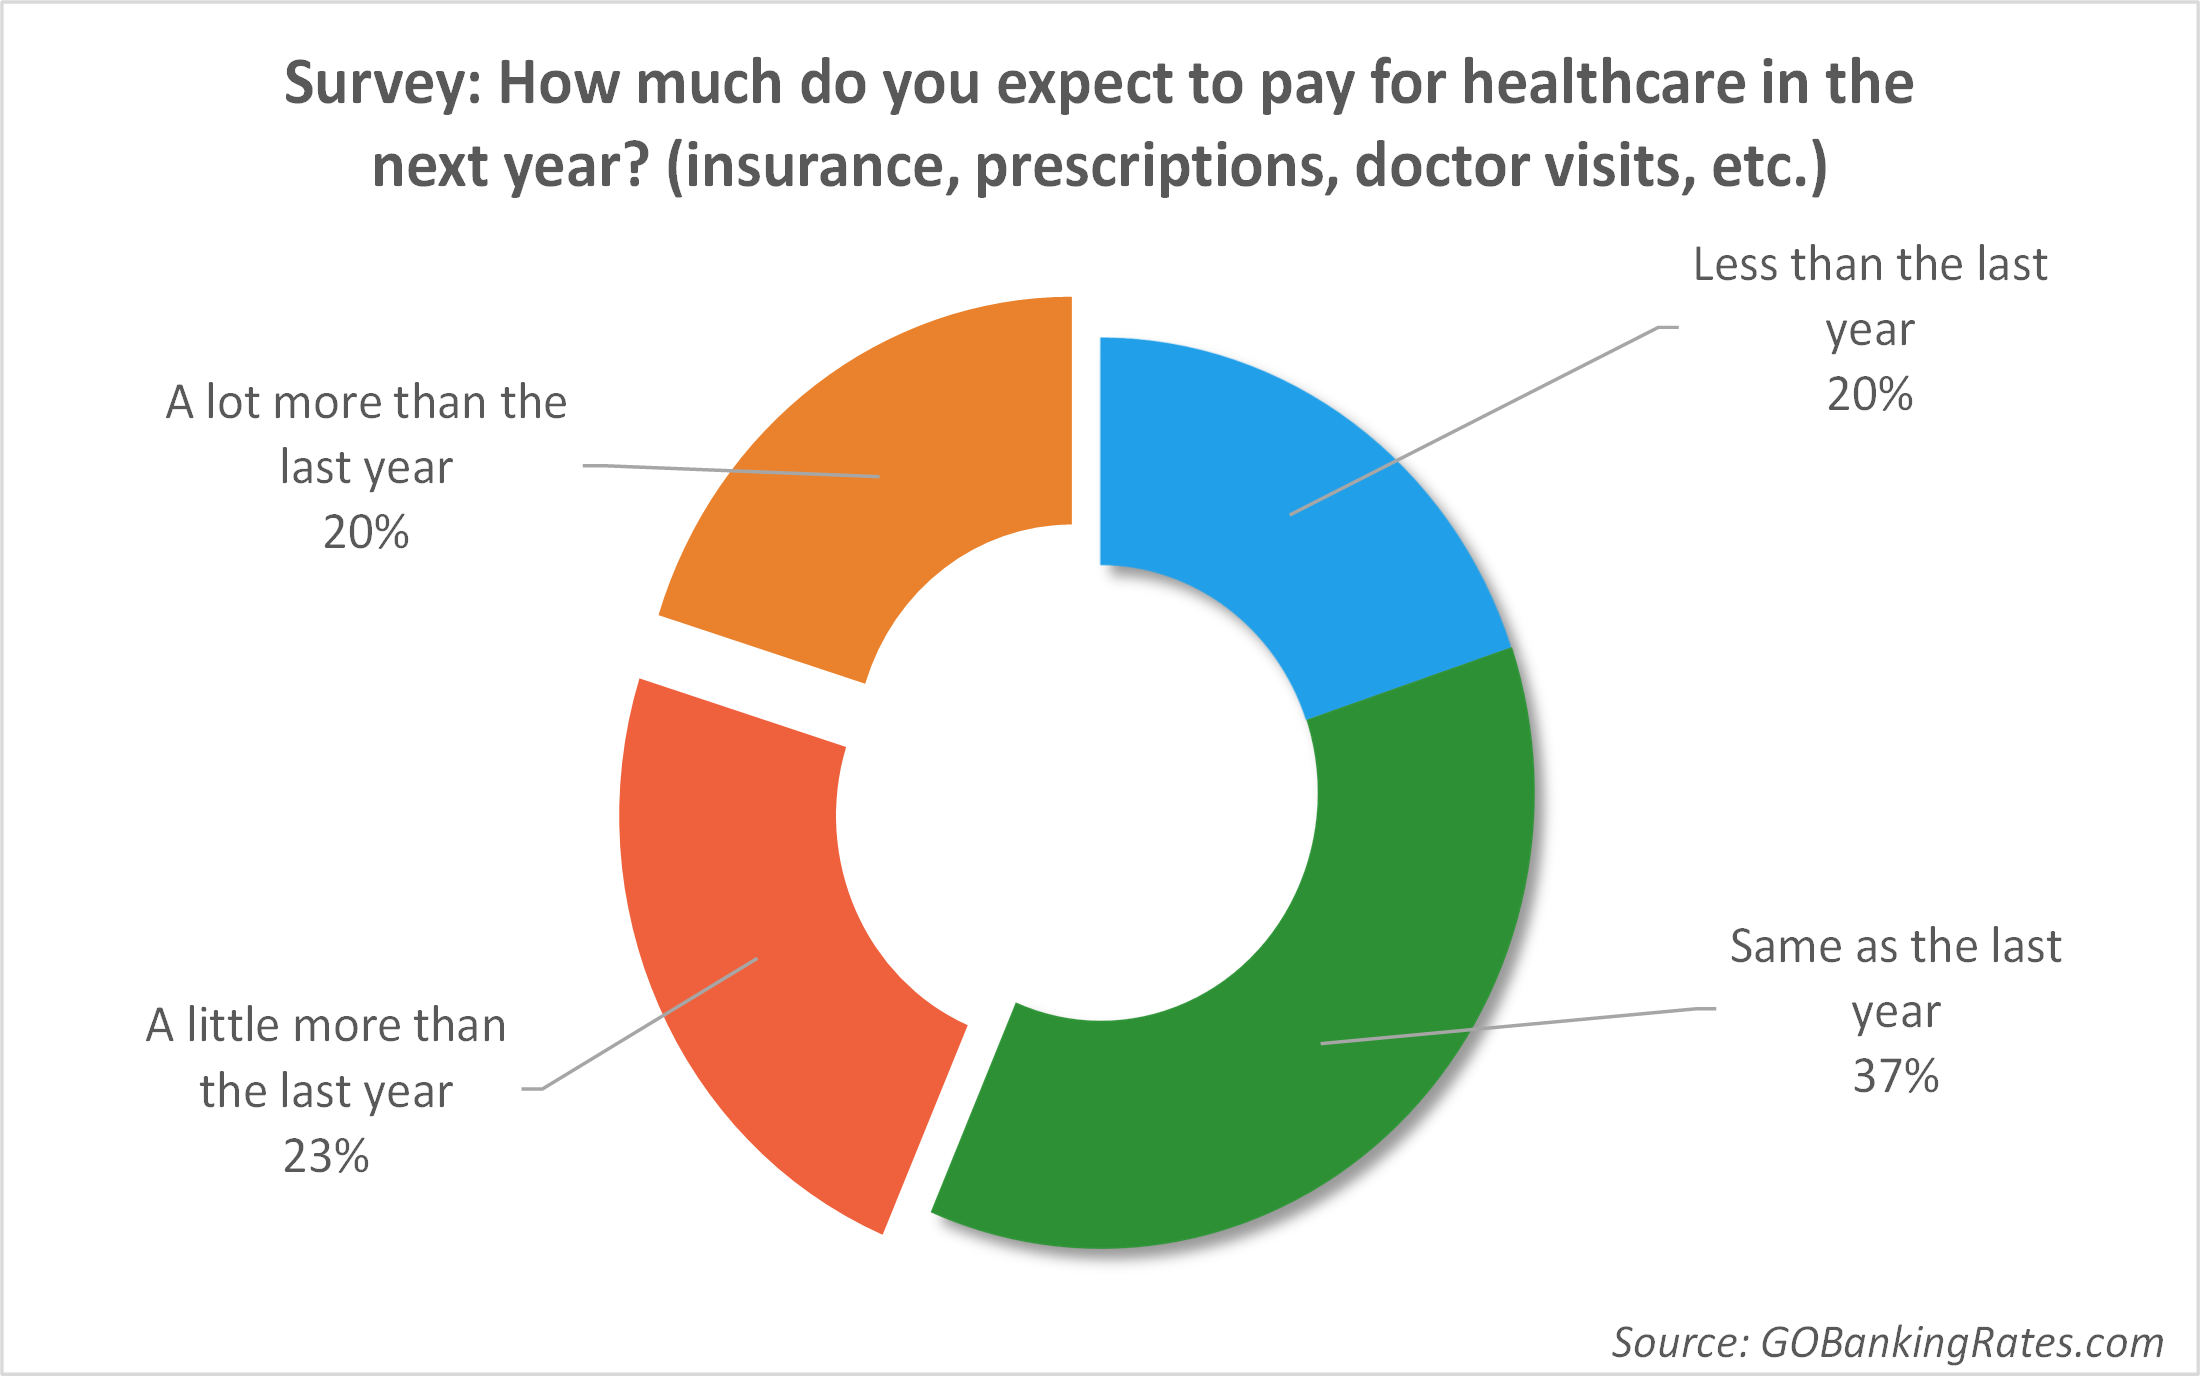 Survey: How much to you expect to pay for healthcare in the next year?